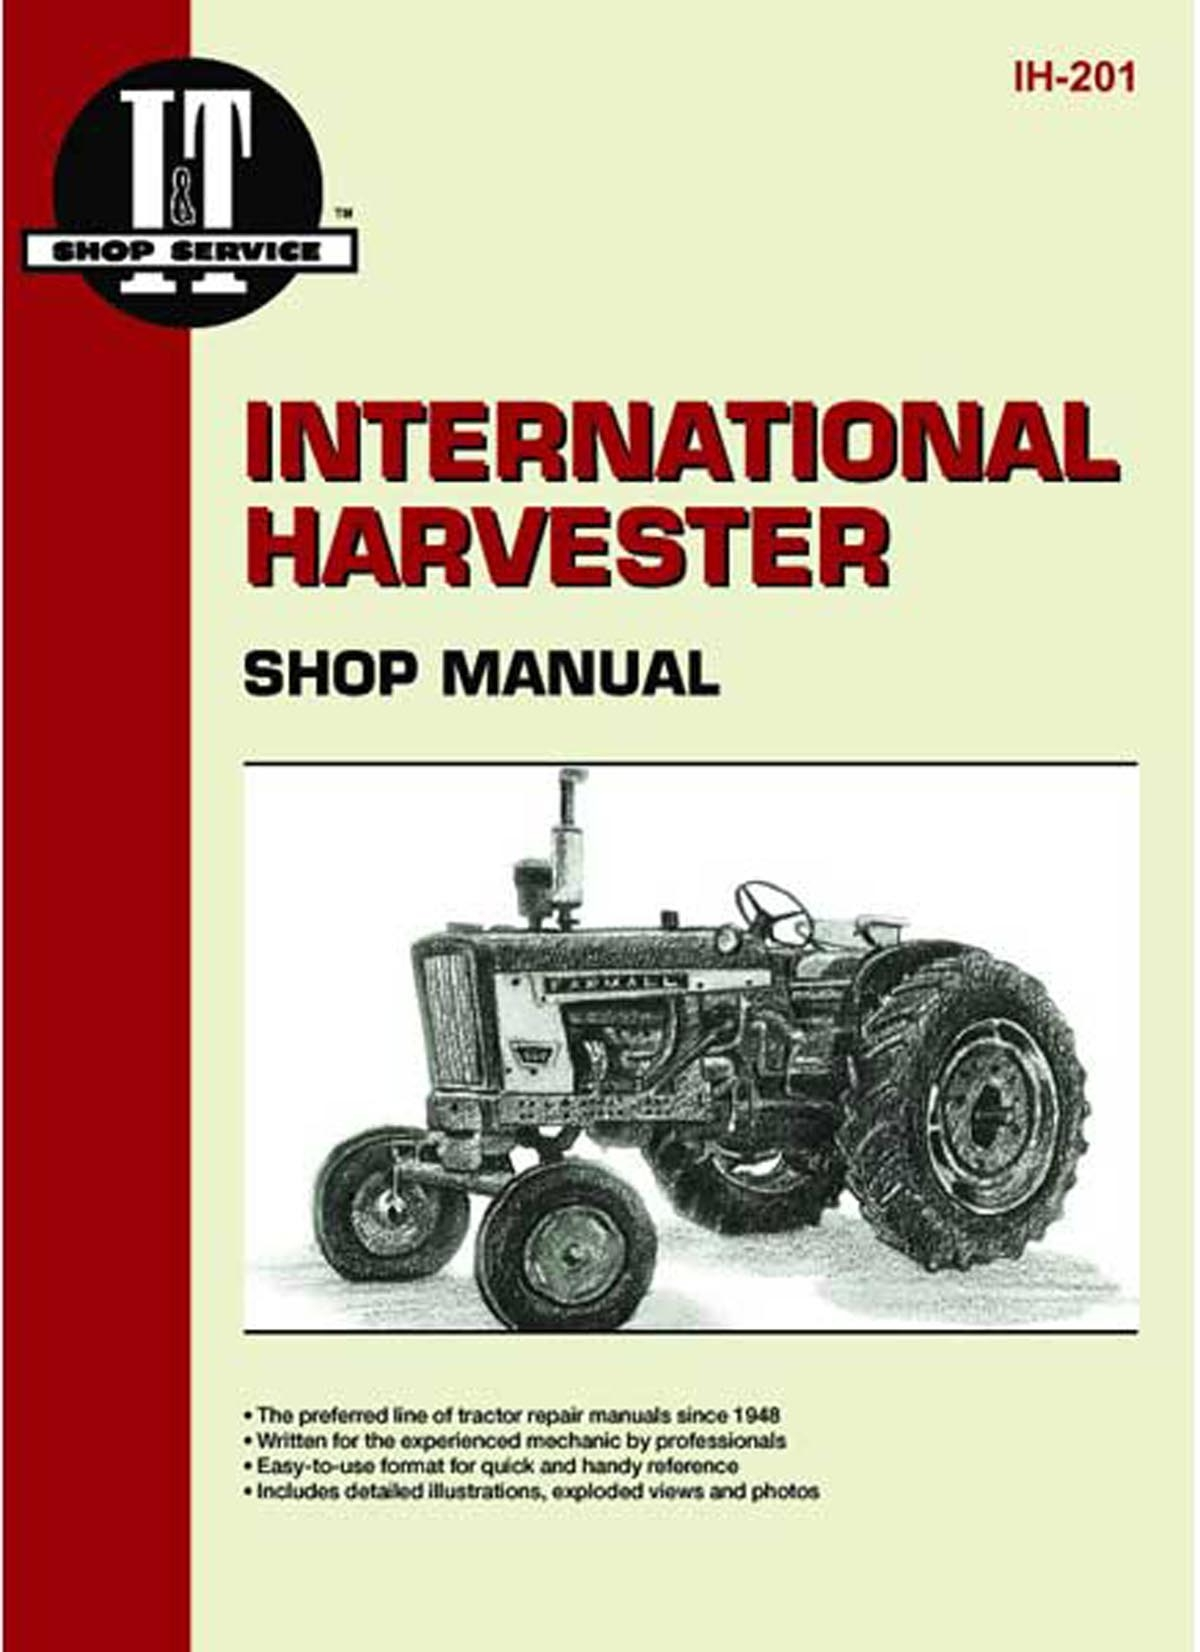 I T Shop Service Manual Case Ih Parts Tractor. I T Shop Service Manual. Wiring. Case Ih Cx70 Wiring Schematic At Scoala.co